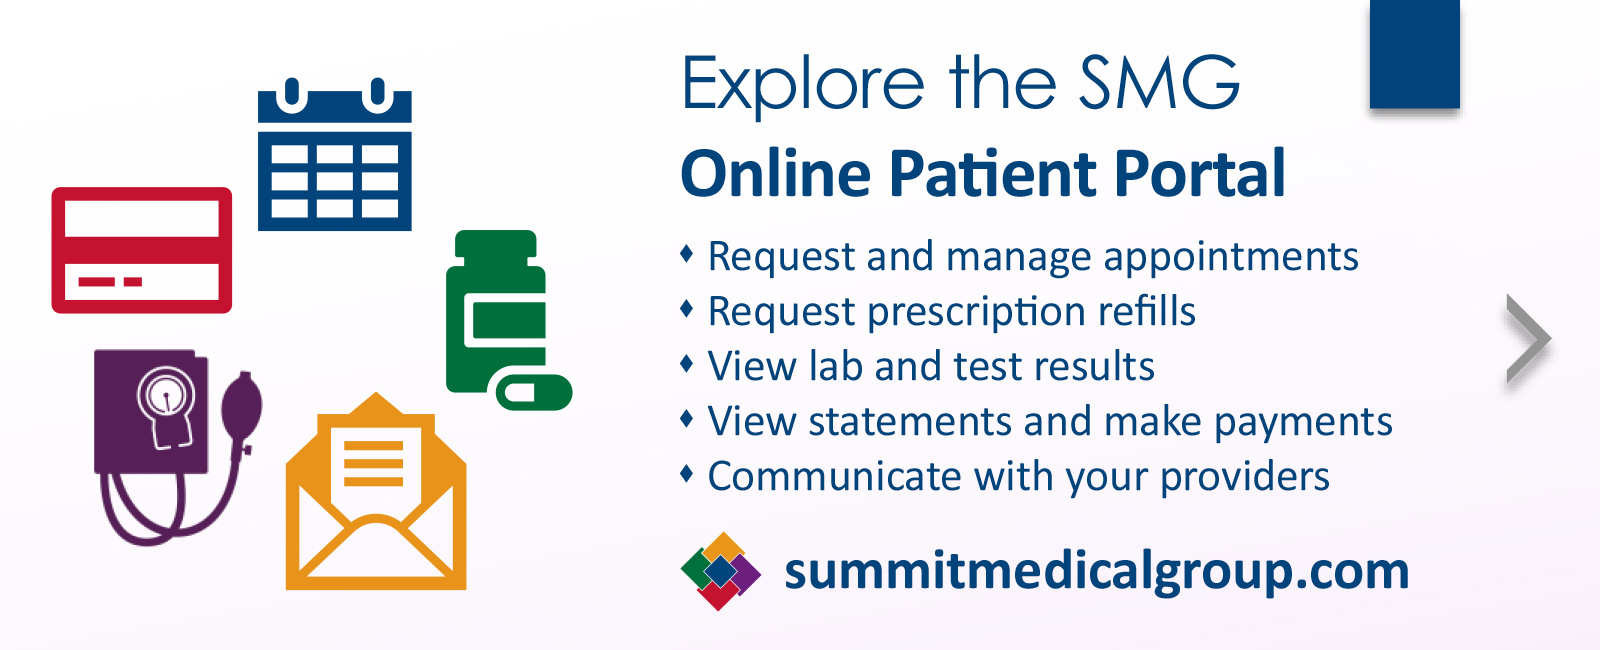 Explore the SMG Online Patient Portal